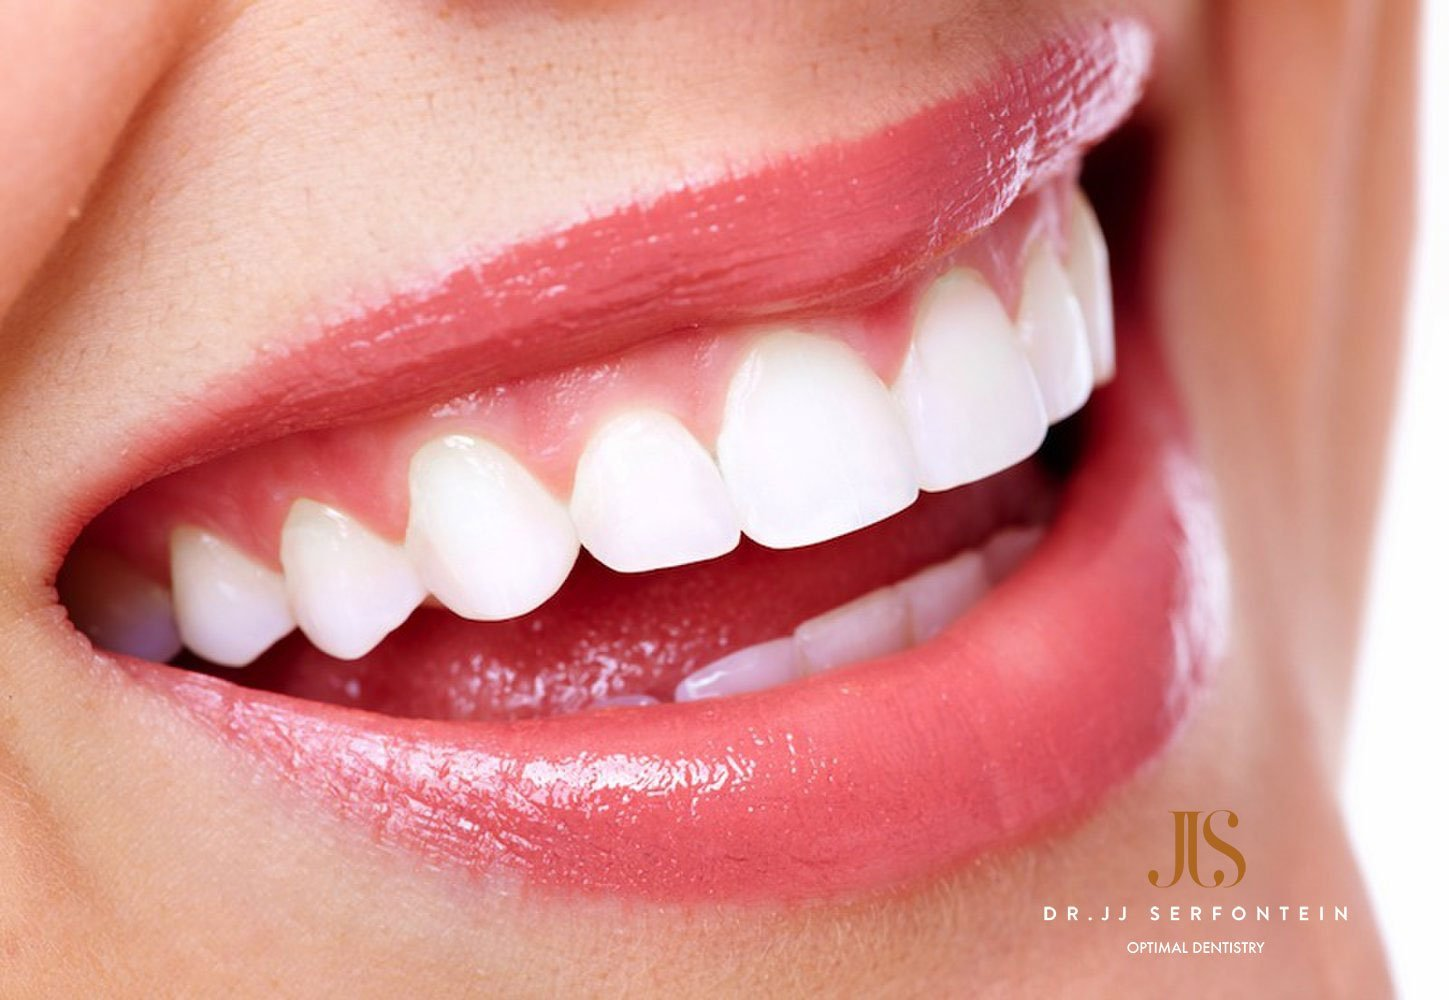 3 ways to get straighter teeth without unsightly braces